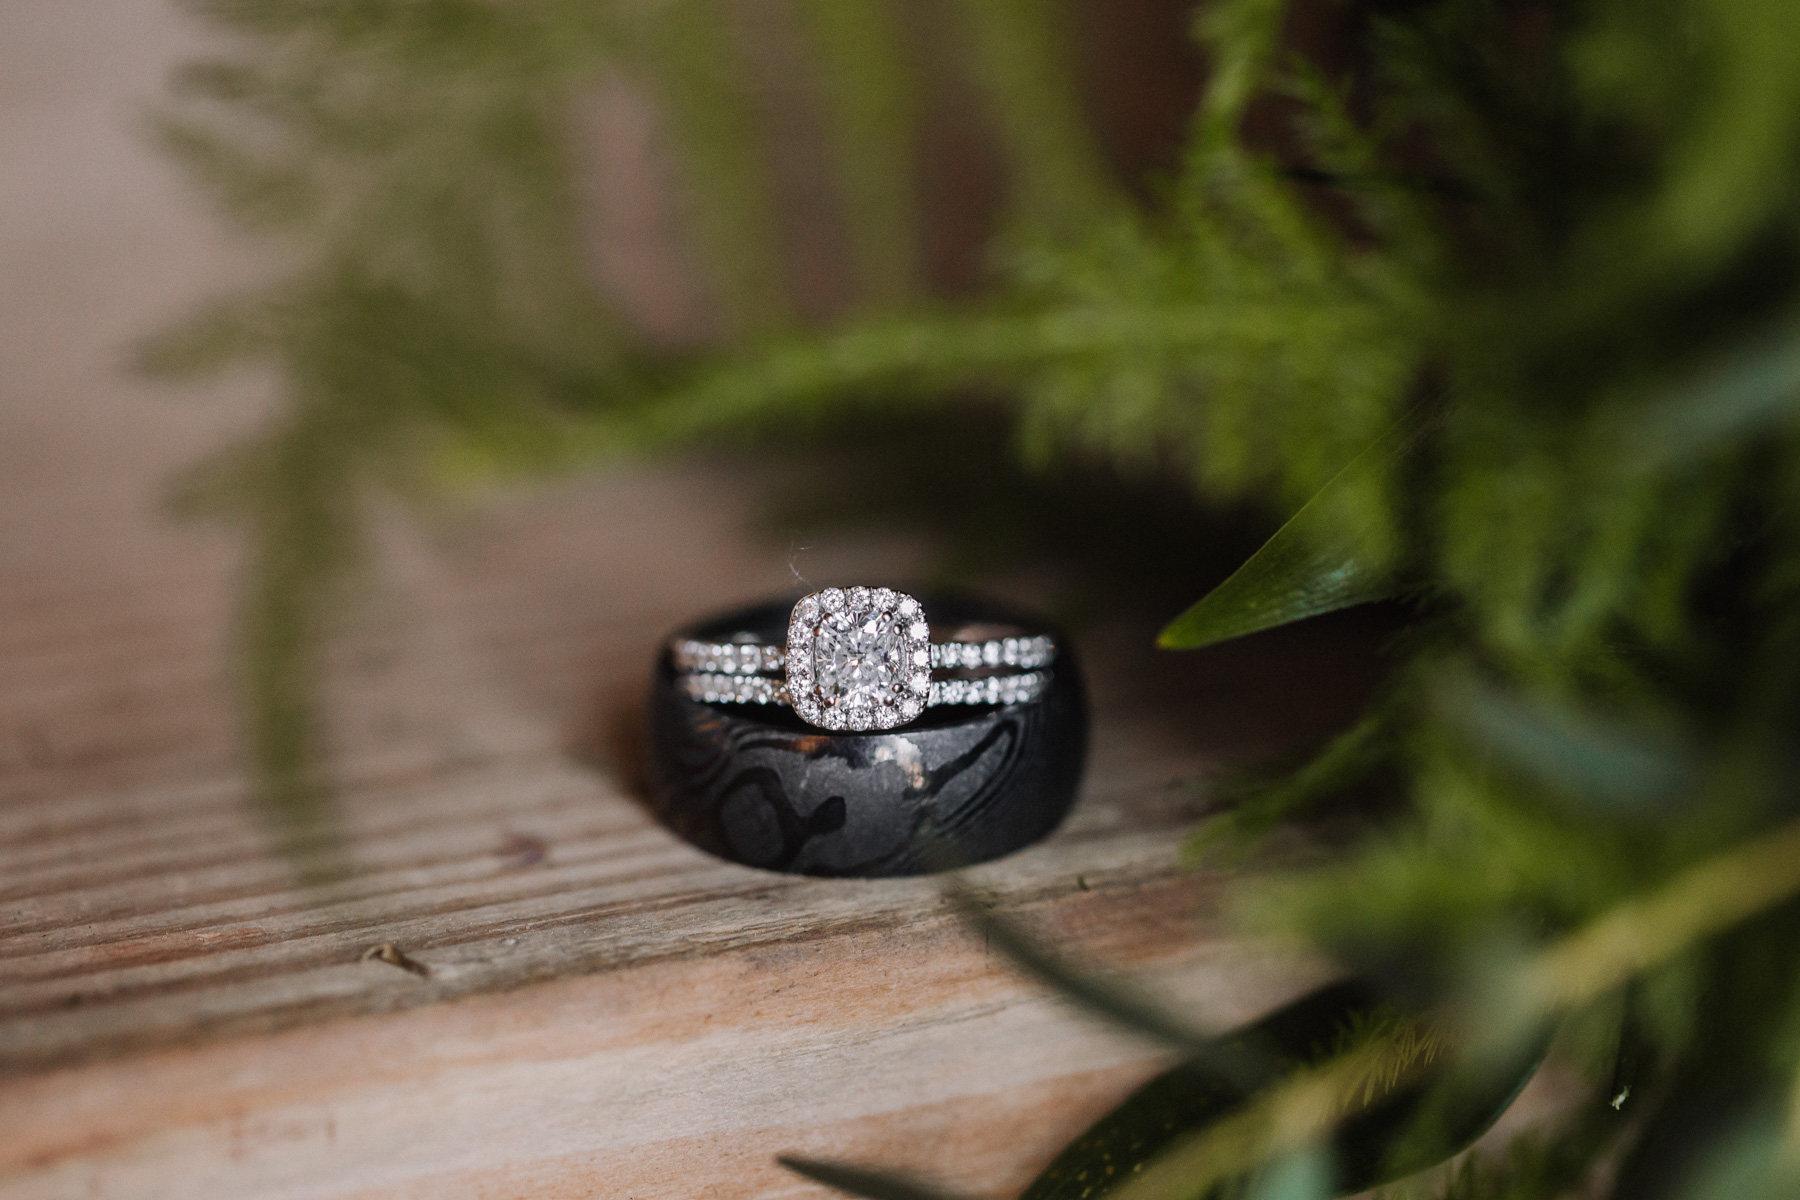 Wedding Day Details - Bride and Groom wedding bands | Kayli LaFon Photography